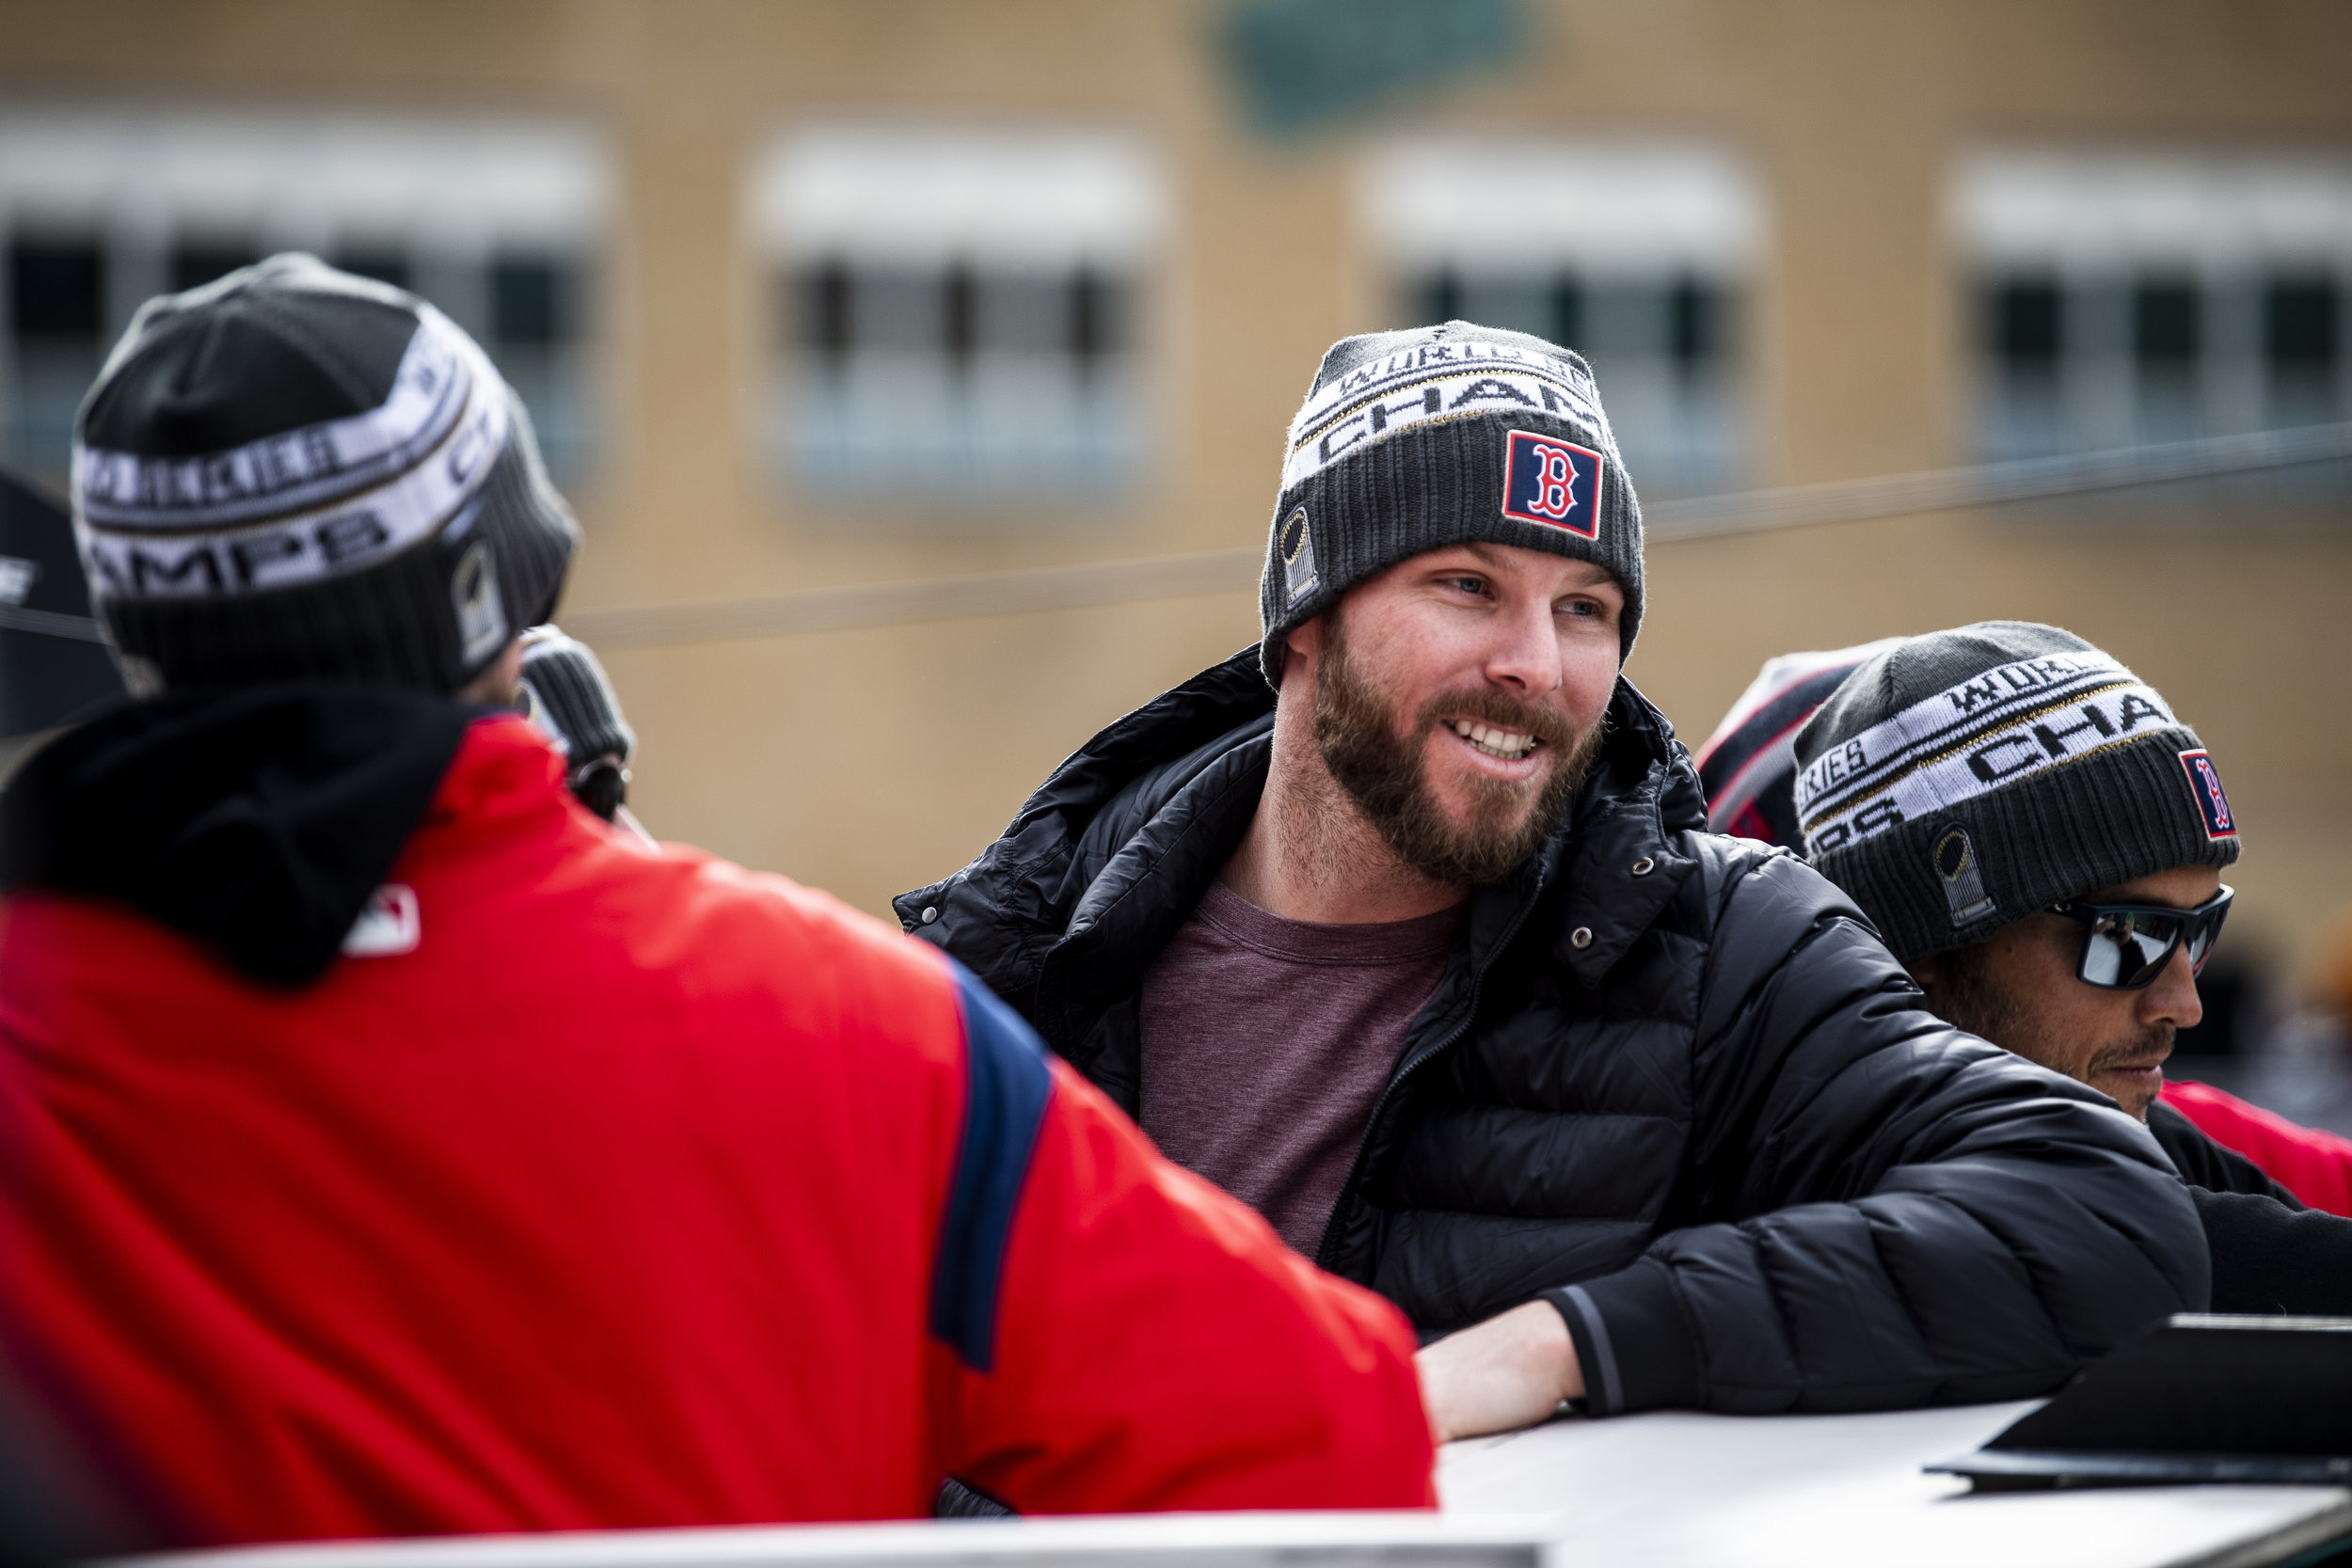 October 31, 2018, Boston, MA: Boston Red Sox pitcher Chris Sale on a duck boat as the Red Sox Celebrate the World Series Parade in Boston, Massachusetts on Wednesday, October 31, 2018. (Photo by Matthew Thomas/Boston Red Sox)